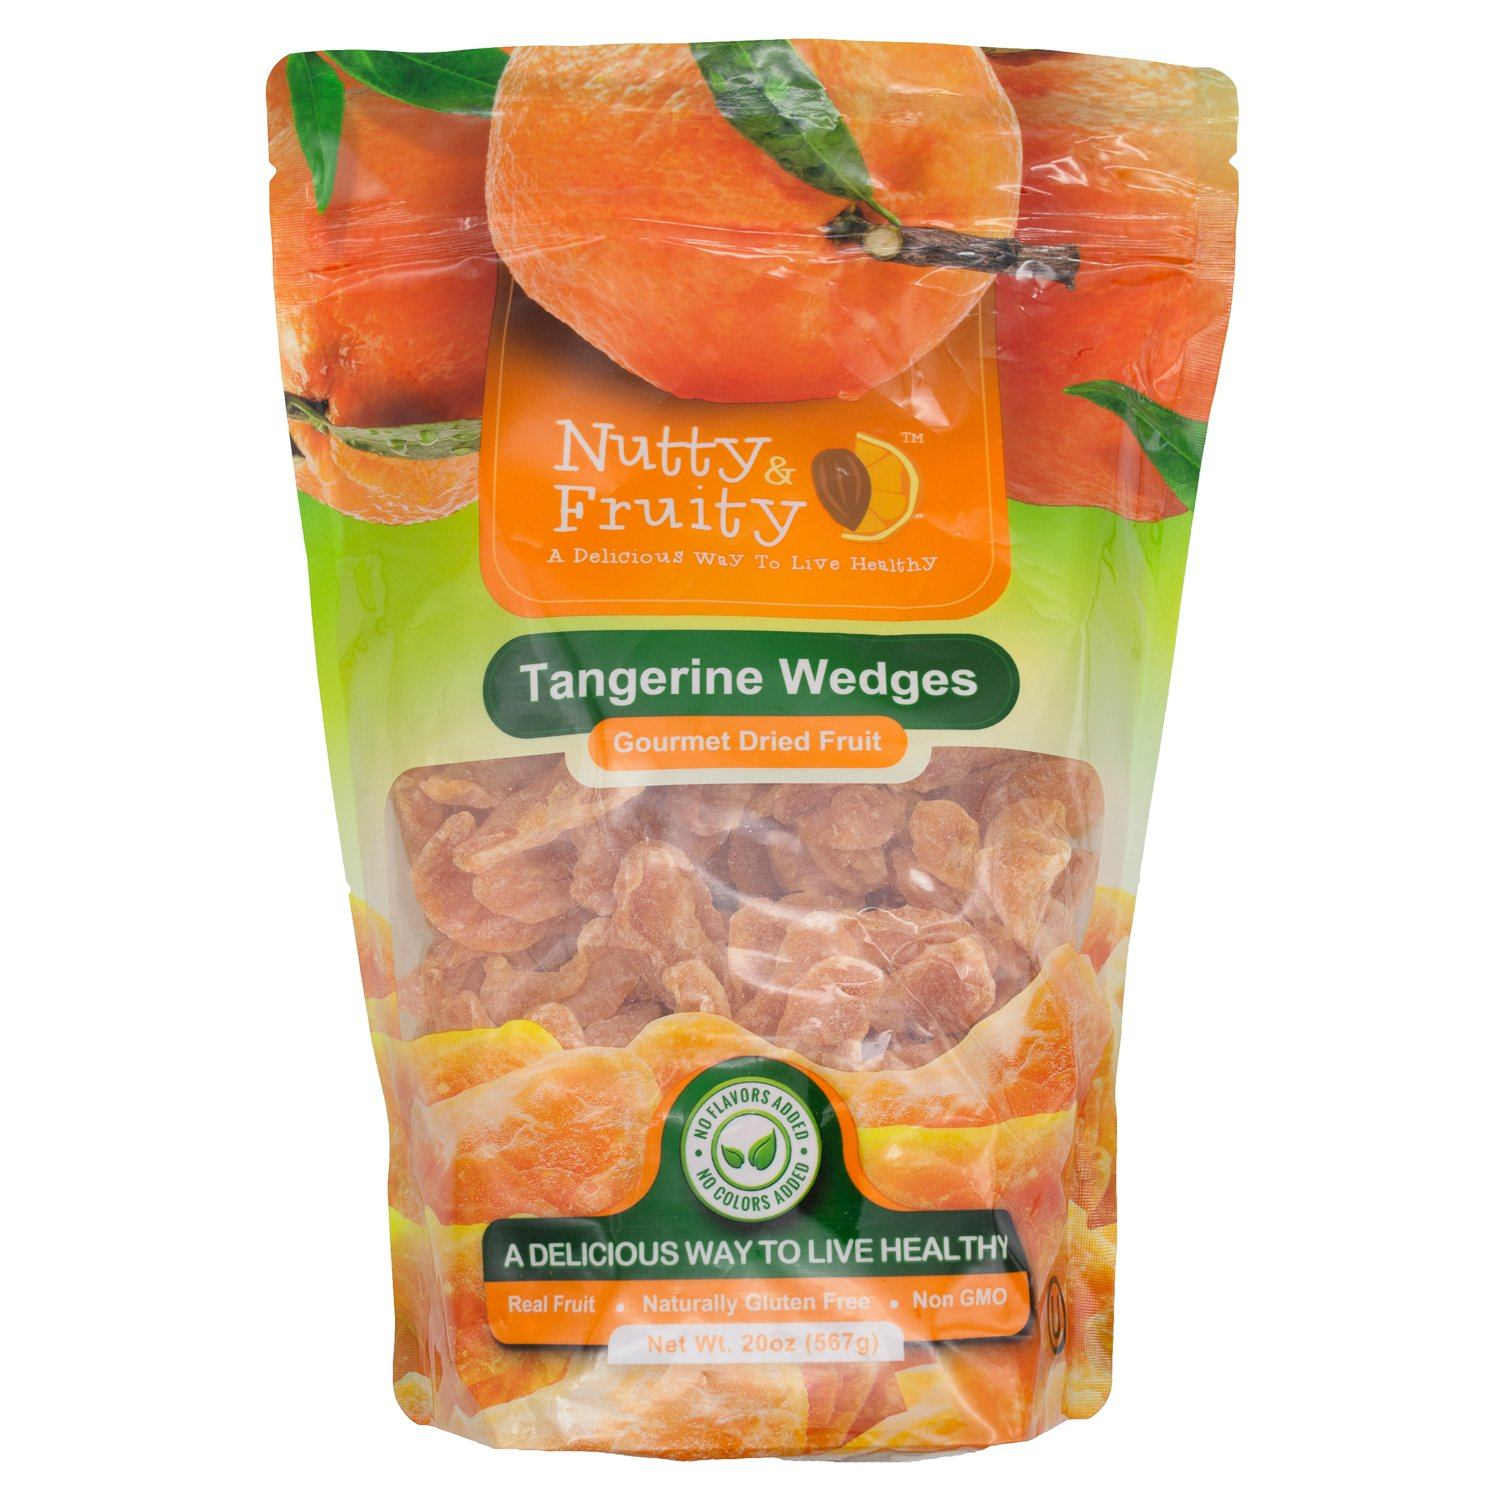 Nutty Fruity Dried Tangerine Wedges Nutty & Fruity Original 20 Ounce